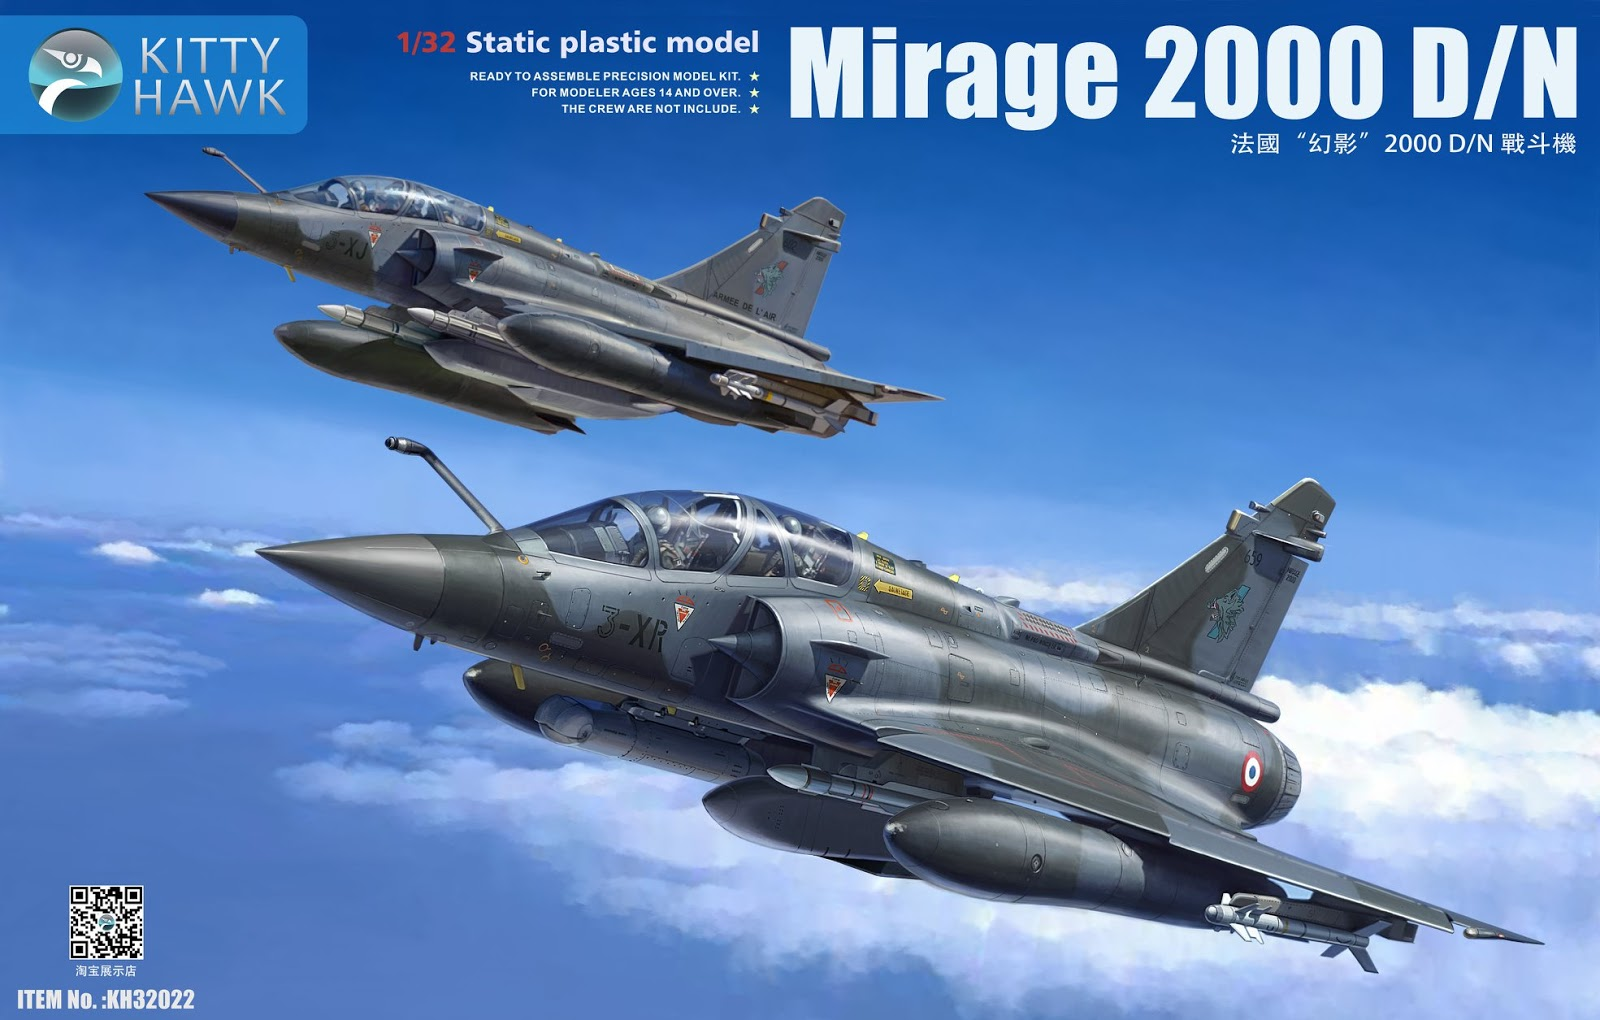 The Modelling News: Kitthawk's 32nd scale Dassault Mirage 2000 D/N